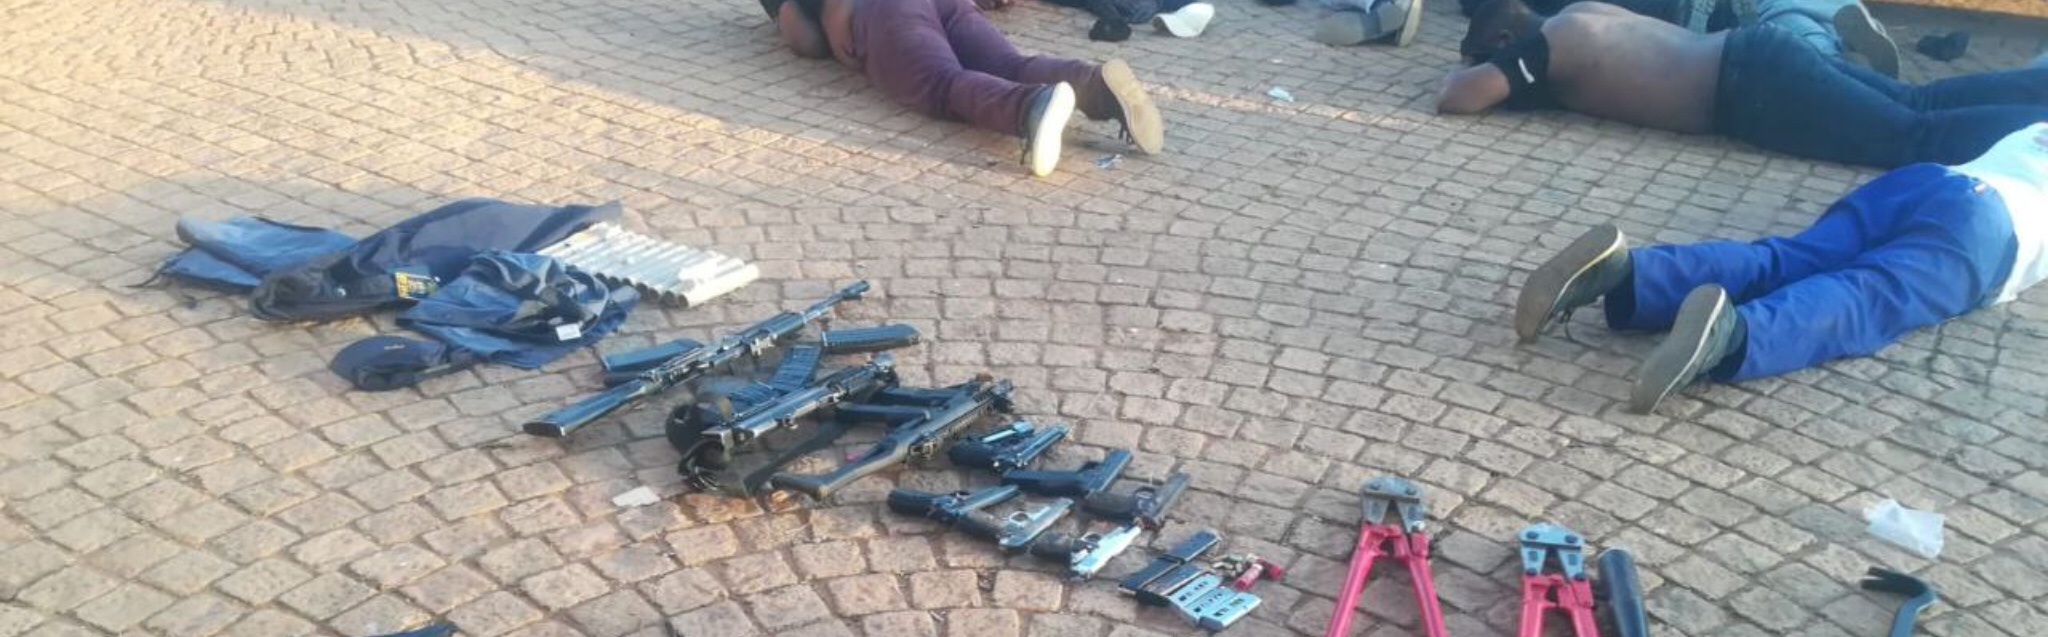 Five killed in Johannesburg hostage situation